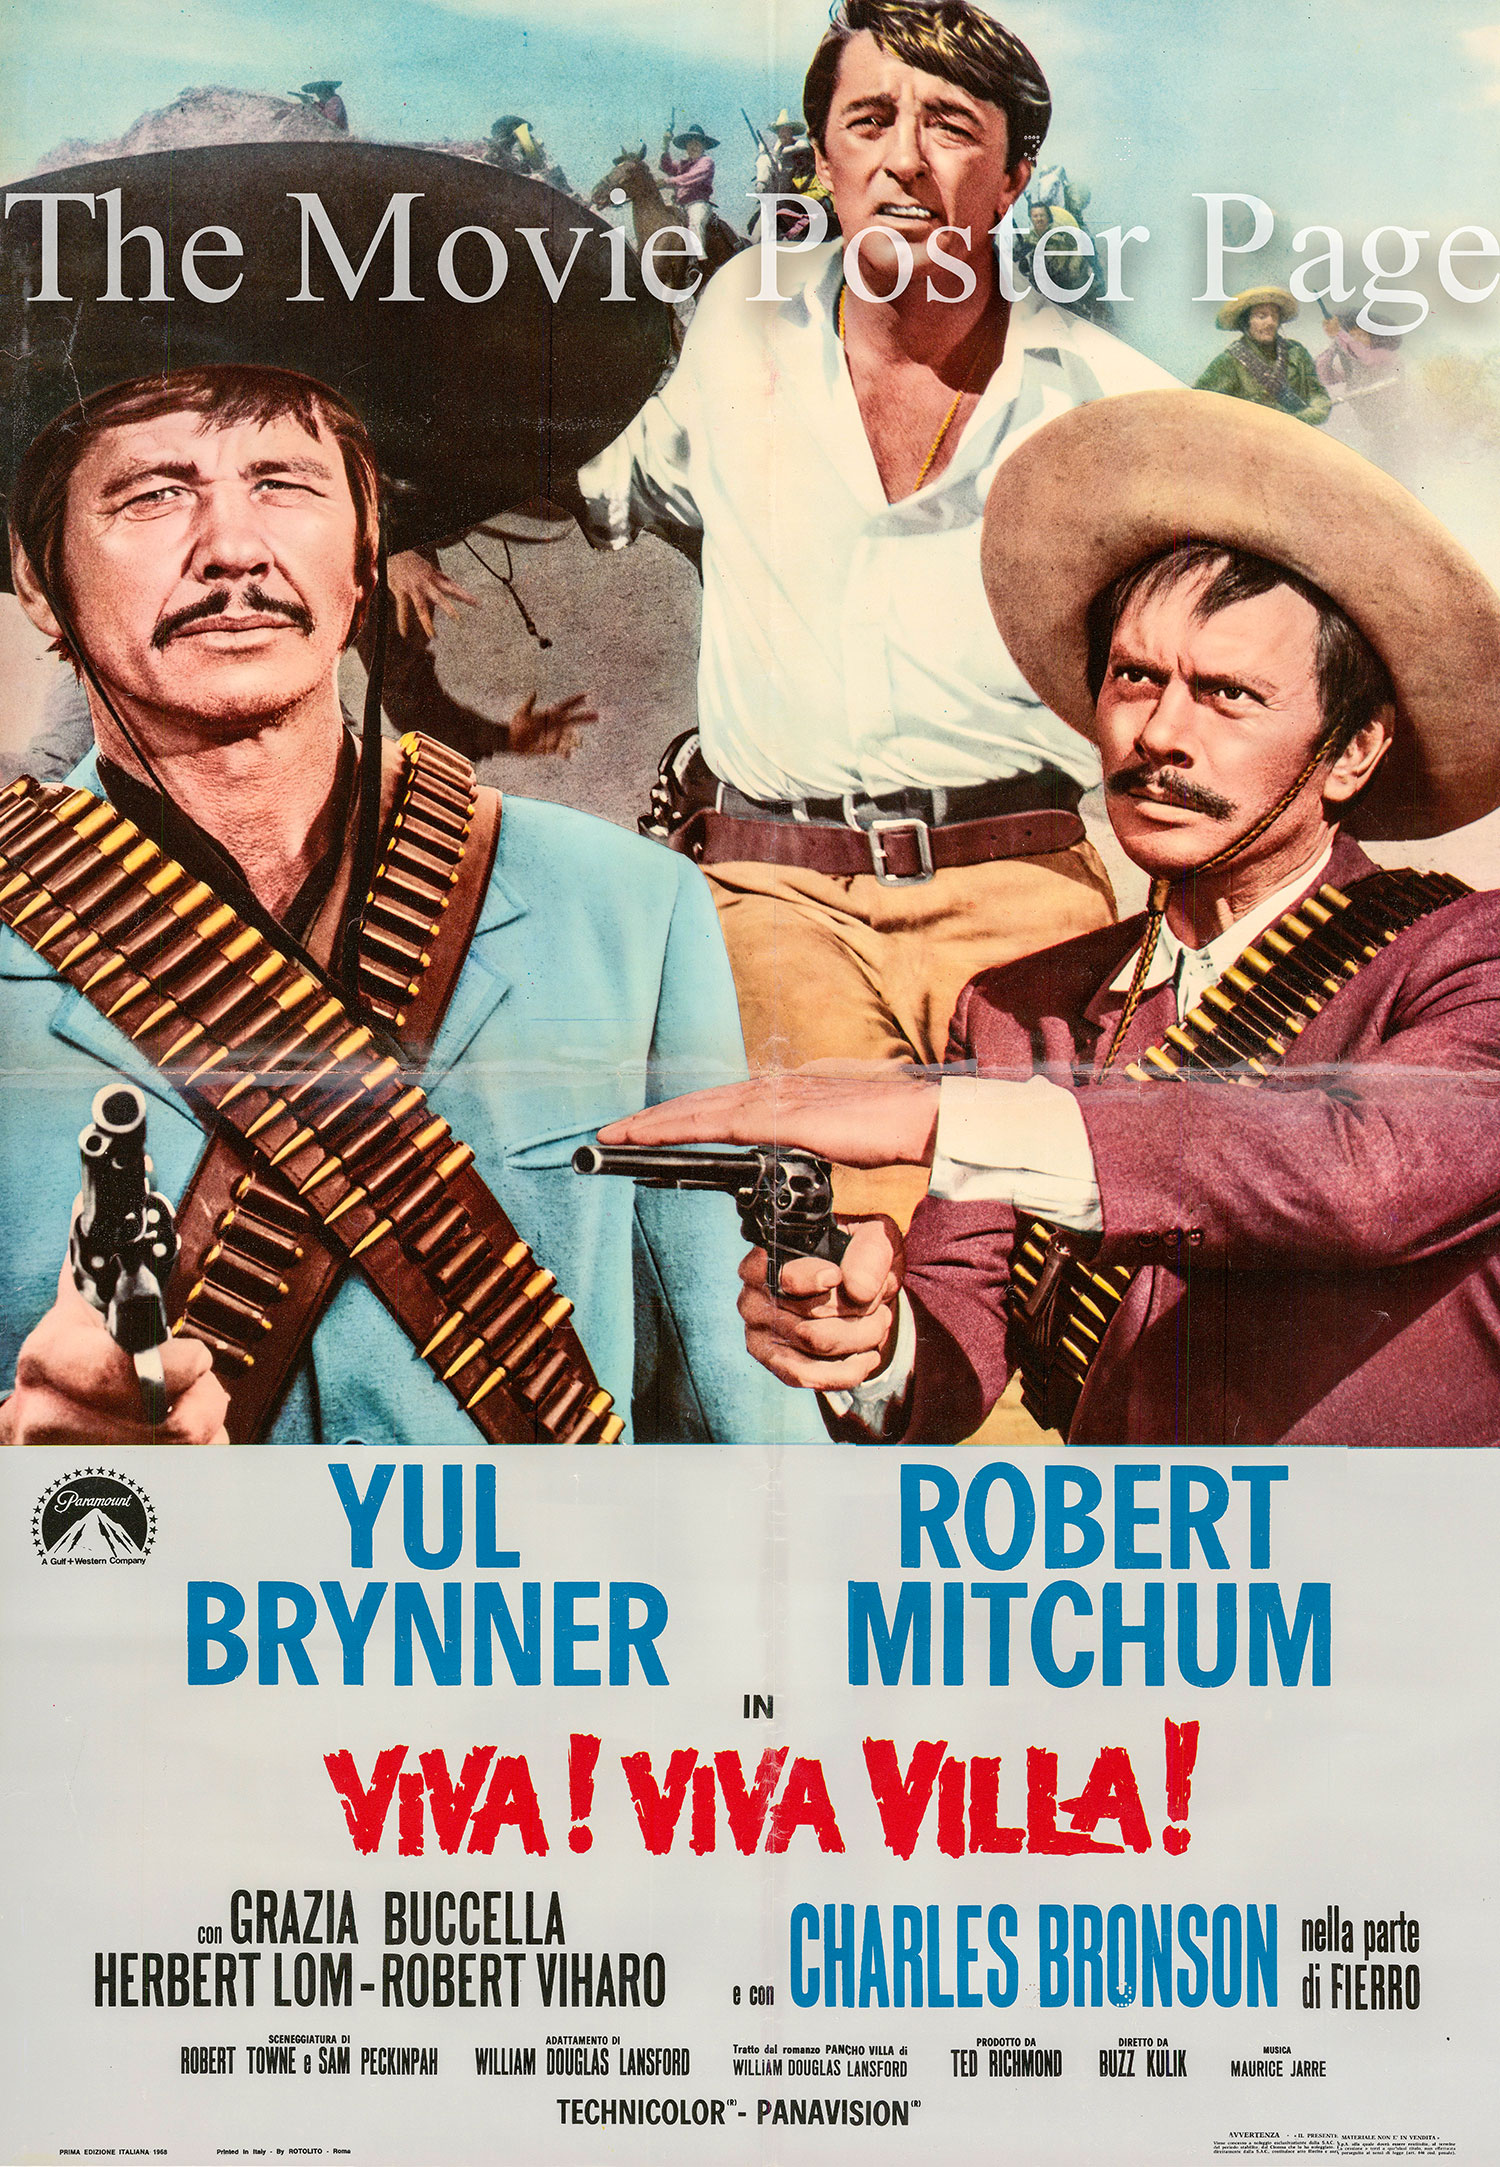 Pictured is an Italian busta for the 1968 Buzz Kulik film <i>Villa Rides</i> starring Yul Brynner as Pancho Villa.